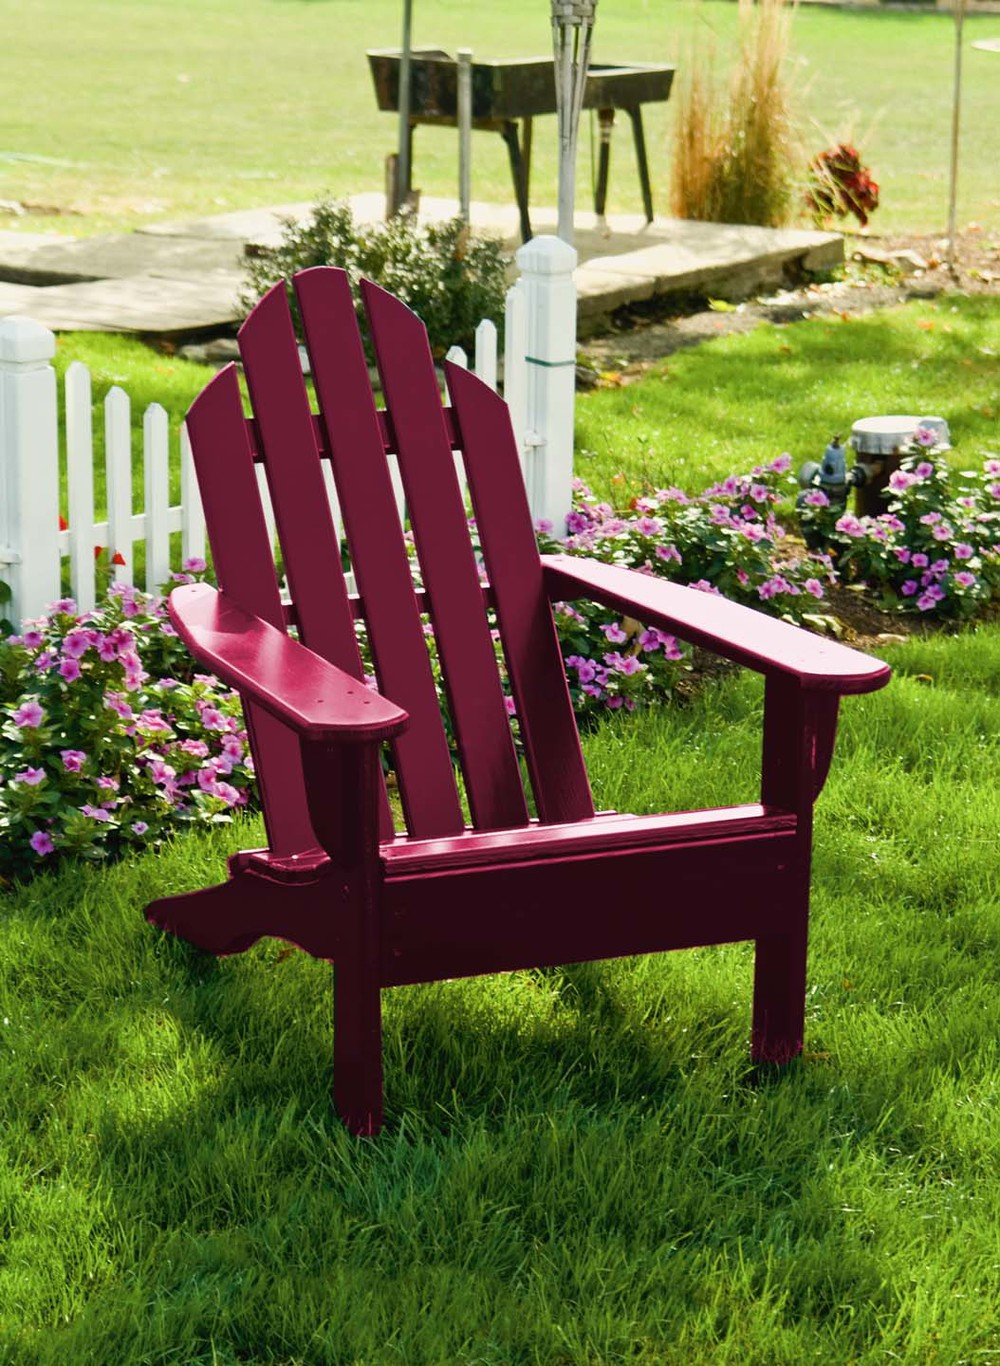 (4) Burgundy Kennebunkport Chair copy.JPG